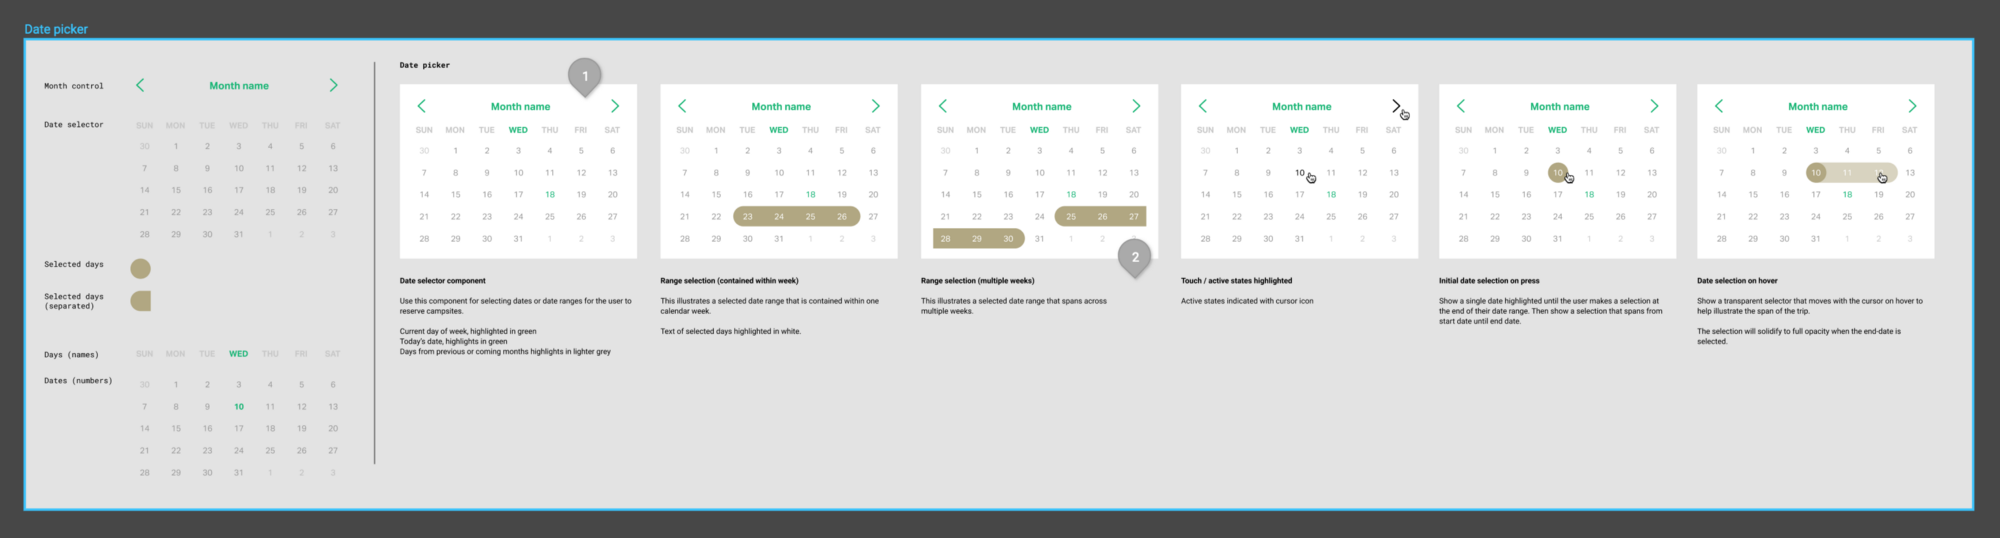 Component Architecture In Figma Design Updated Wiring Diagram Click On Components For Write Ups The Master Which Make Up Date Picker Reside A Frame Named Appropriately So They Get Grouped Panel